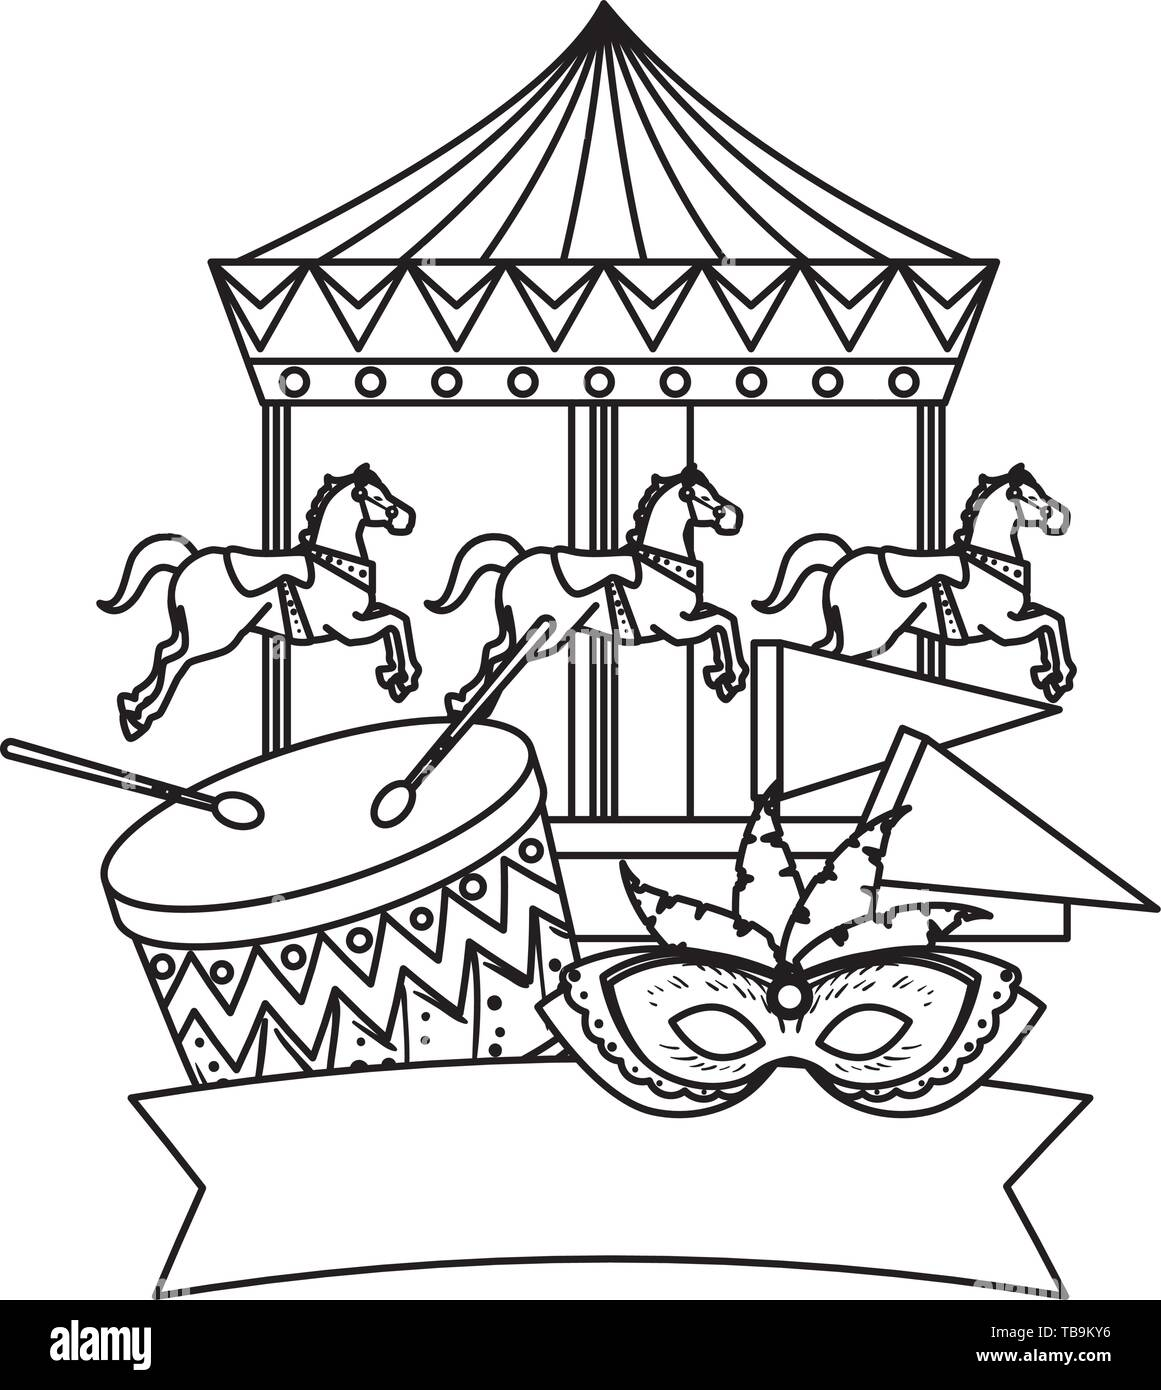 Carnival Carousel Horses With Drum And Mask Stock Vector Image Art Alamy